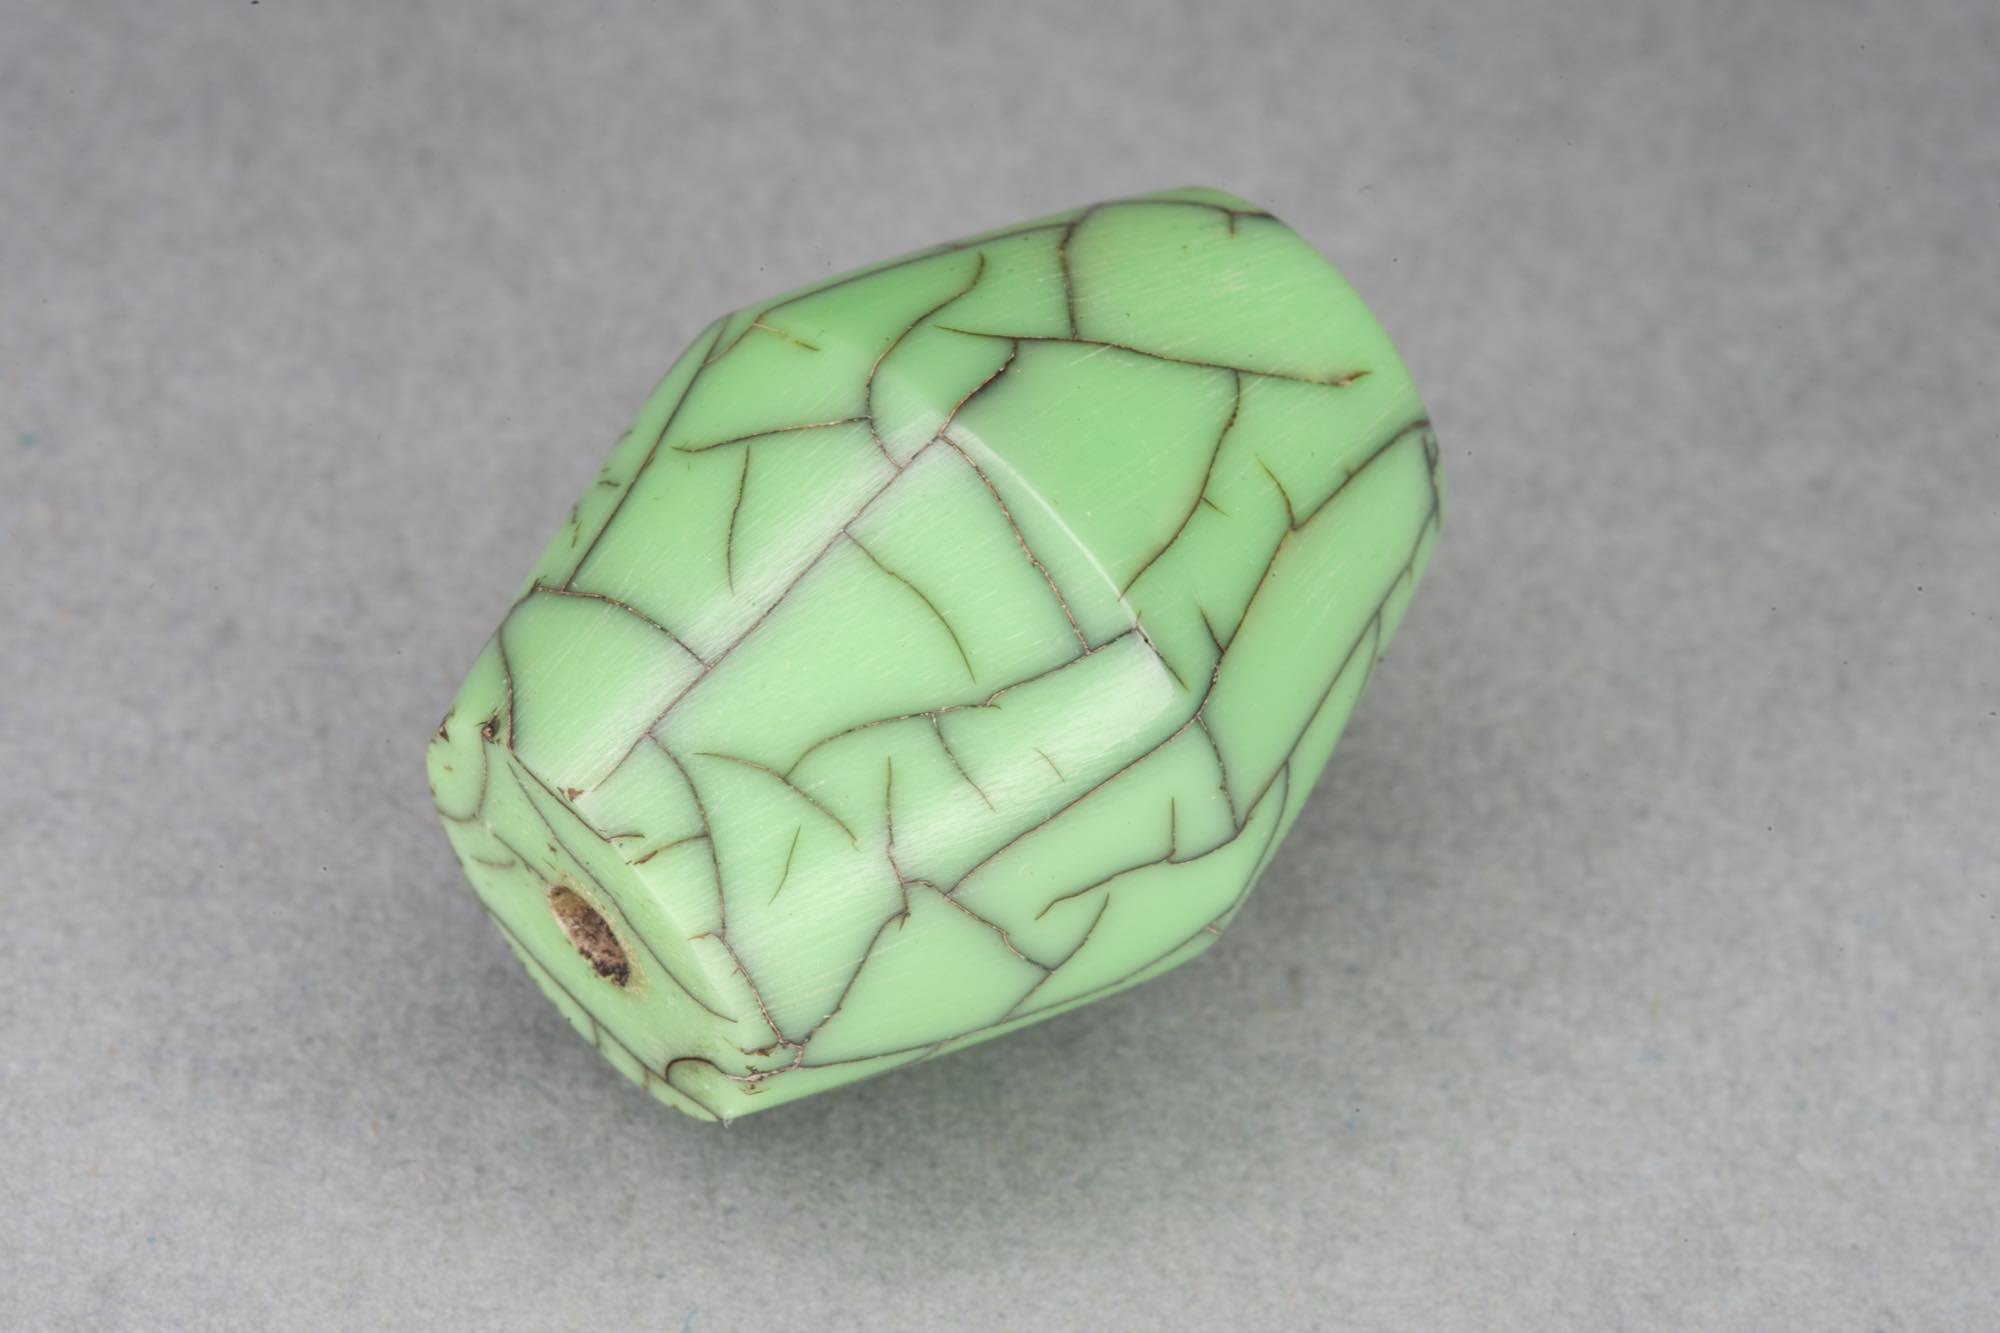 Green Bicone Resin Bead With Crackle Effect 17x22mm, 2mm hole